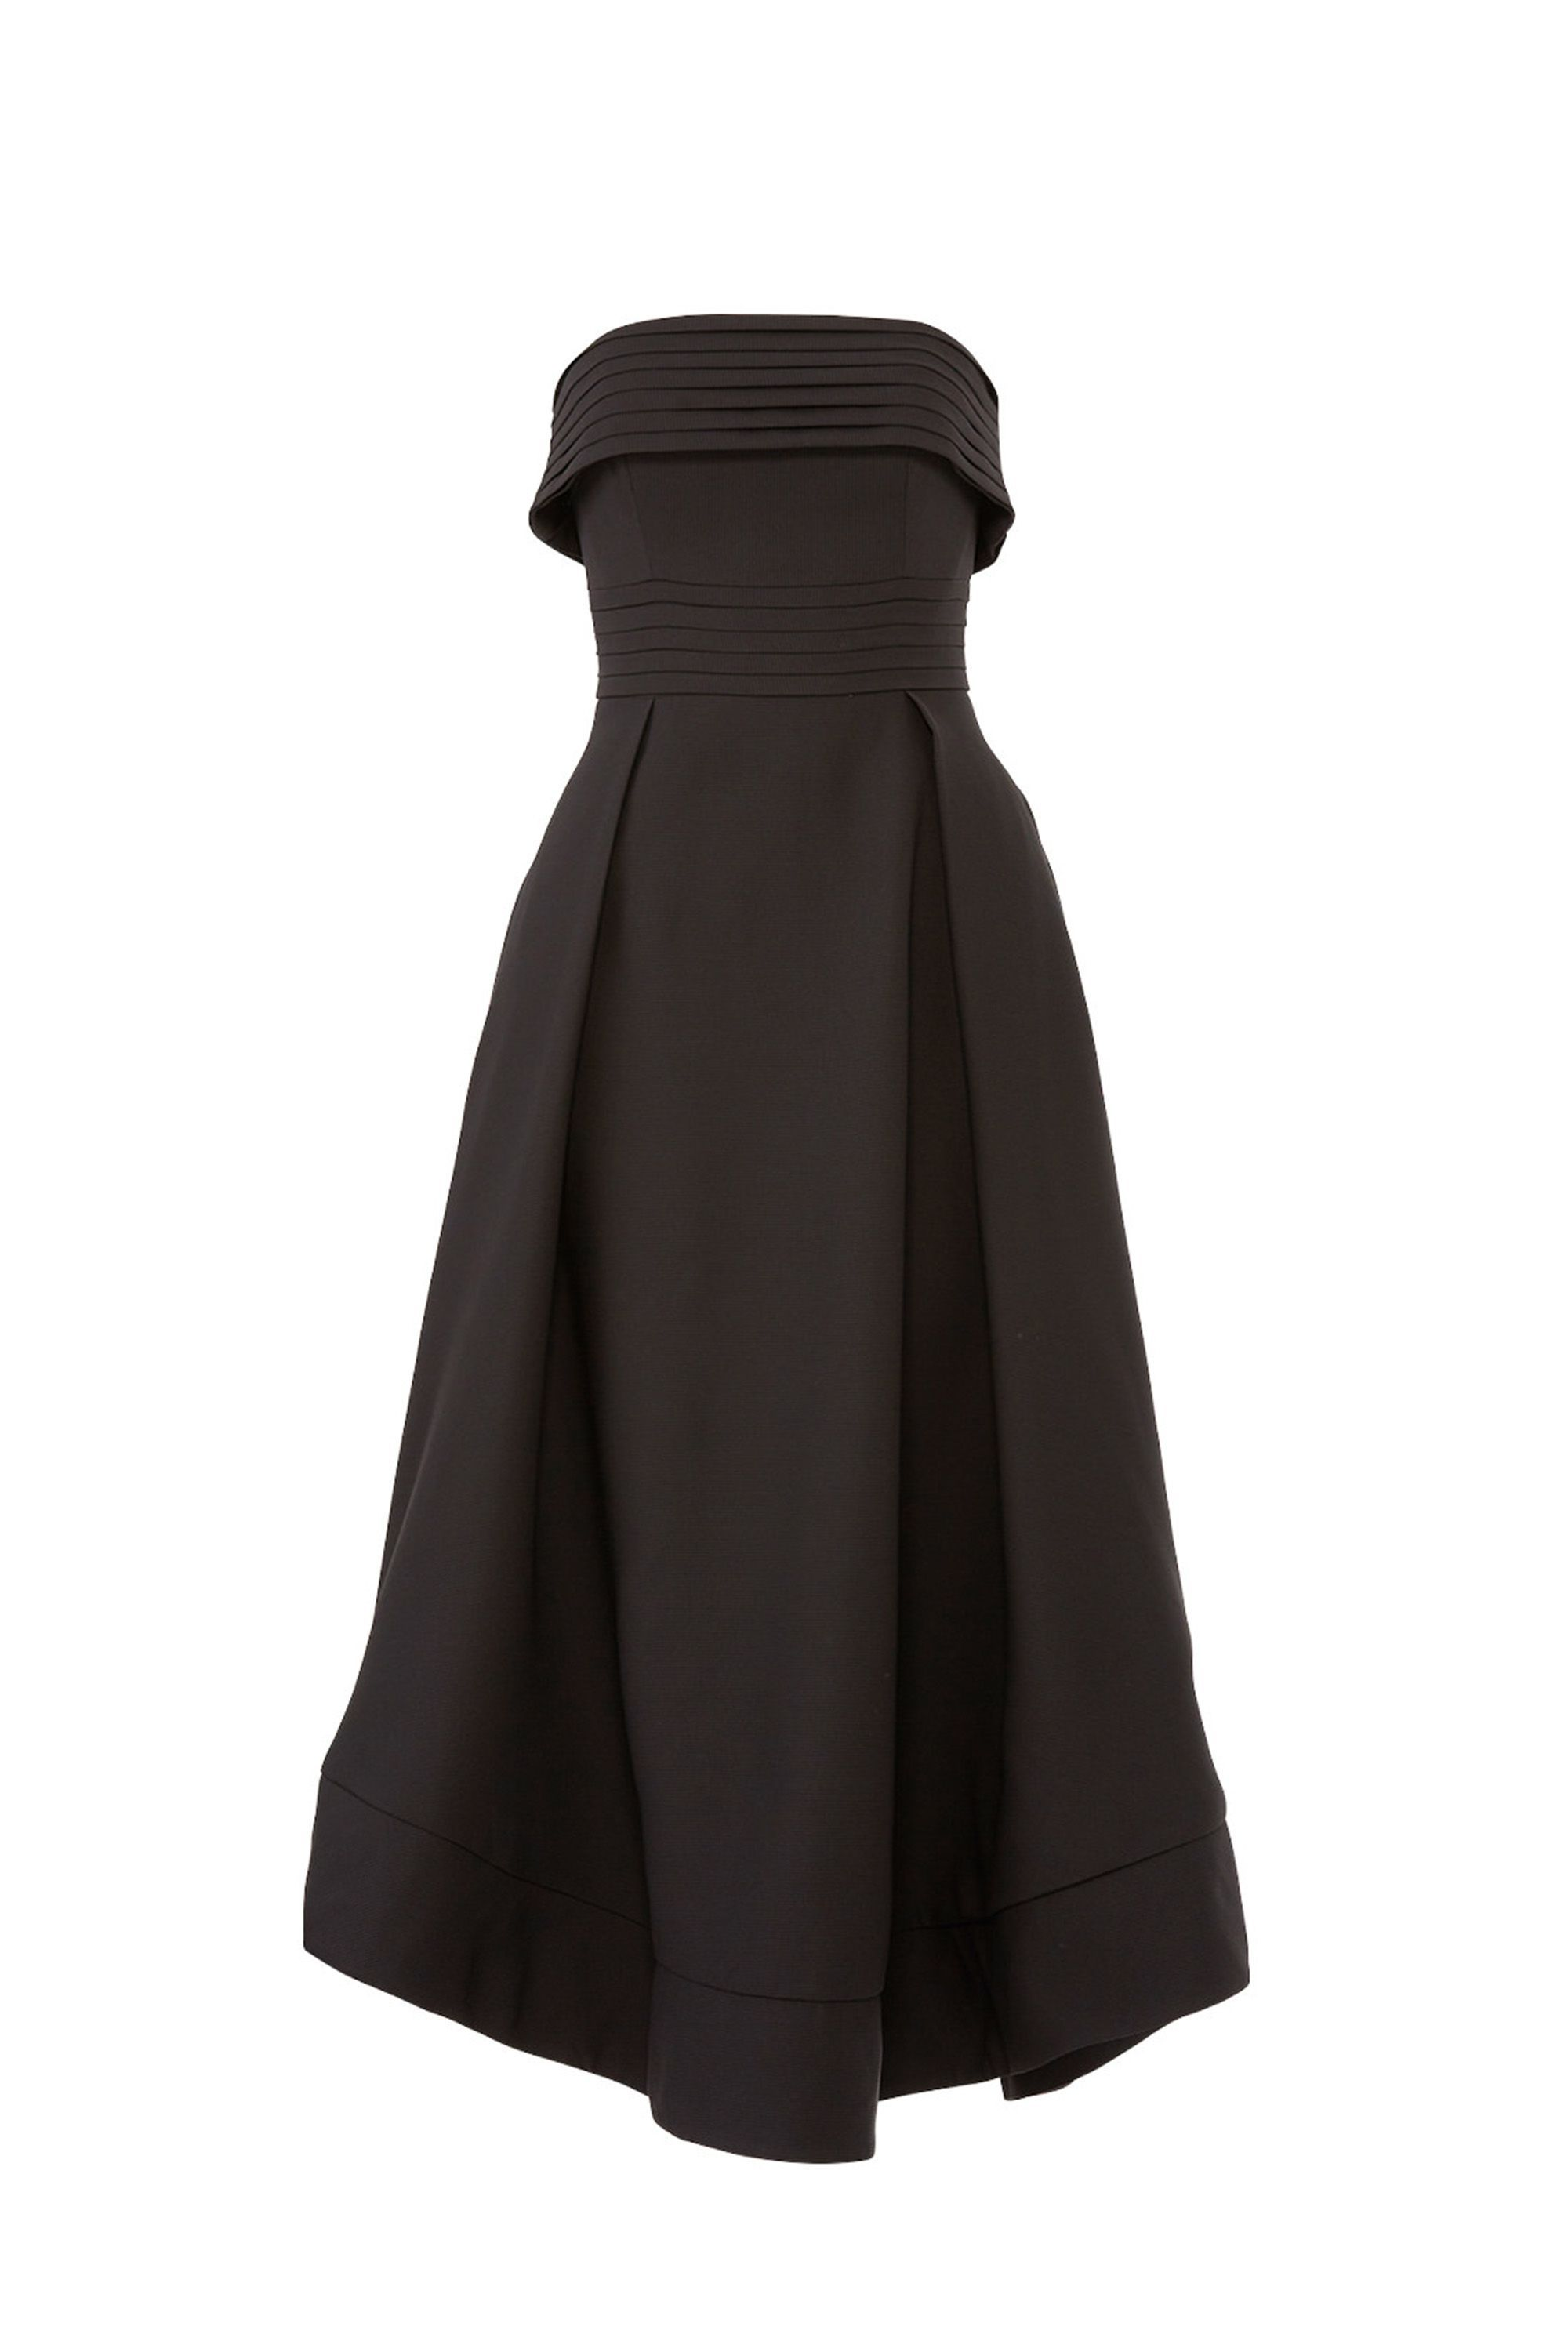 Visceral Strapless Gown C/meo Collective bloomingdales.com $132.00 SHOP NOW A black tie wedding requires a dress with a little bit of drama.